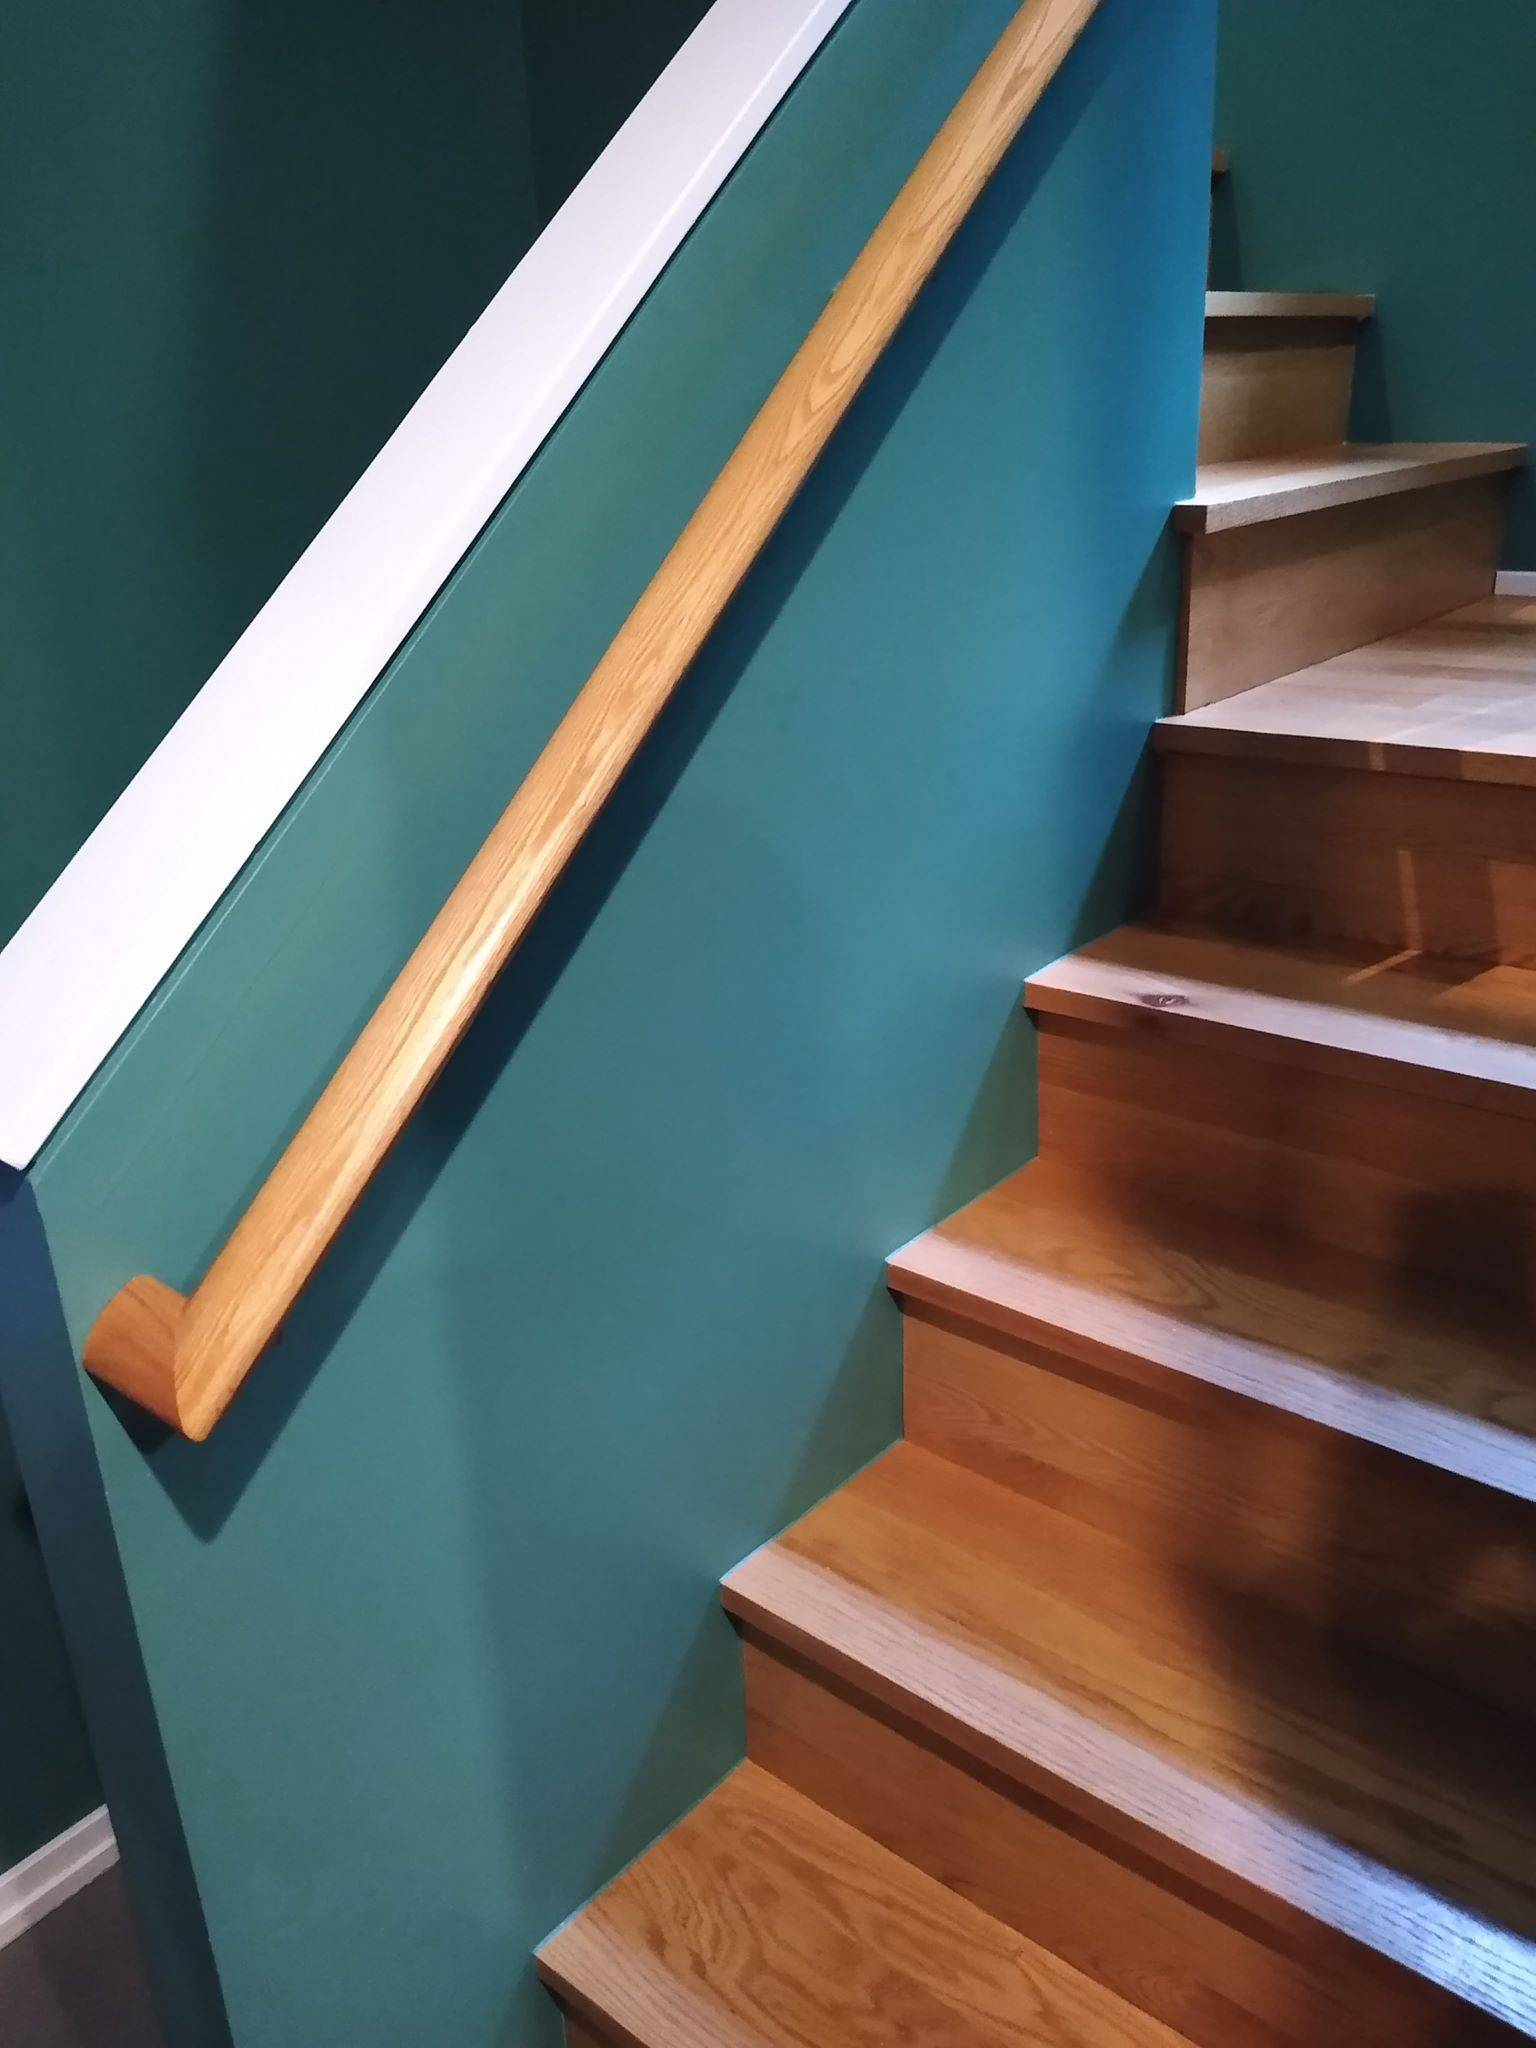 2020.04.23_Logan_Square_staircase_painting - Logan-Square.-Staircase-walls-painting.-Chicago-painter-3.jpg